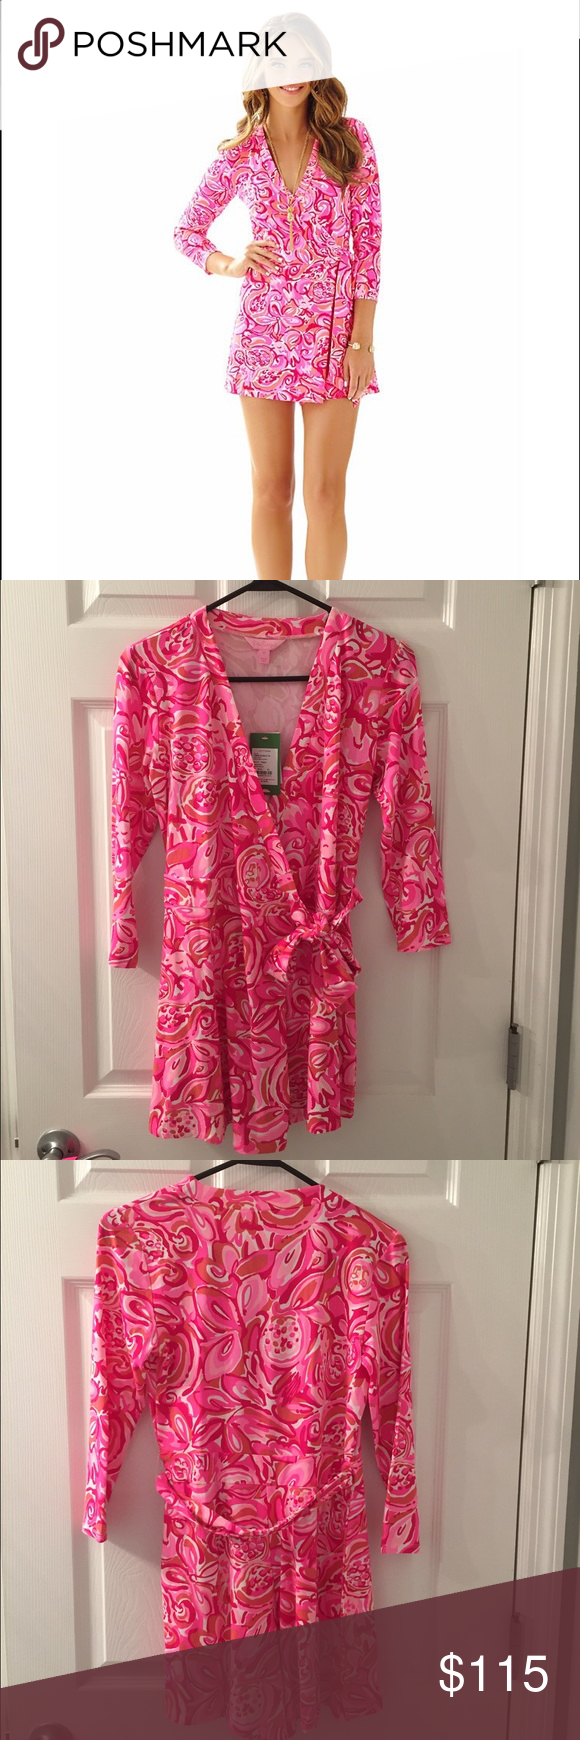 107abc47027 NWT Karlie wrap romper mango salsa XS New with tags. Perfect condition.  Lilly Pulitzer Other